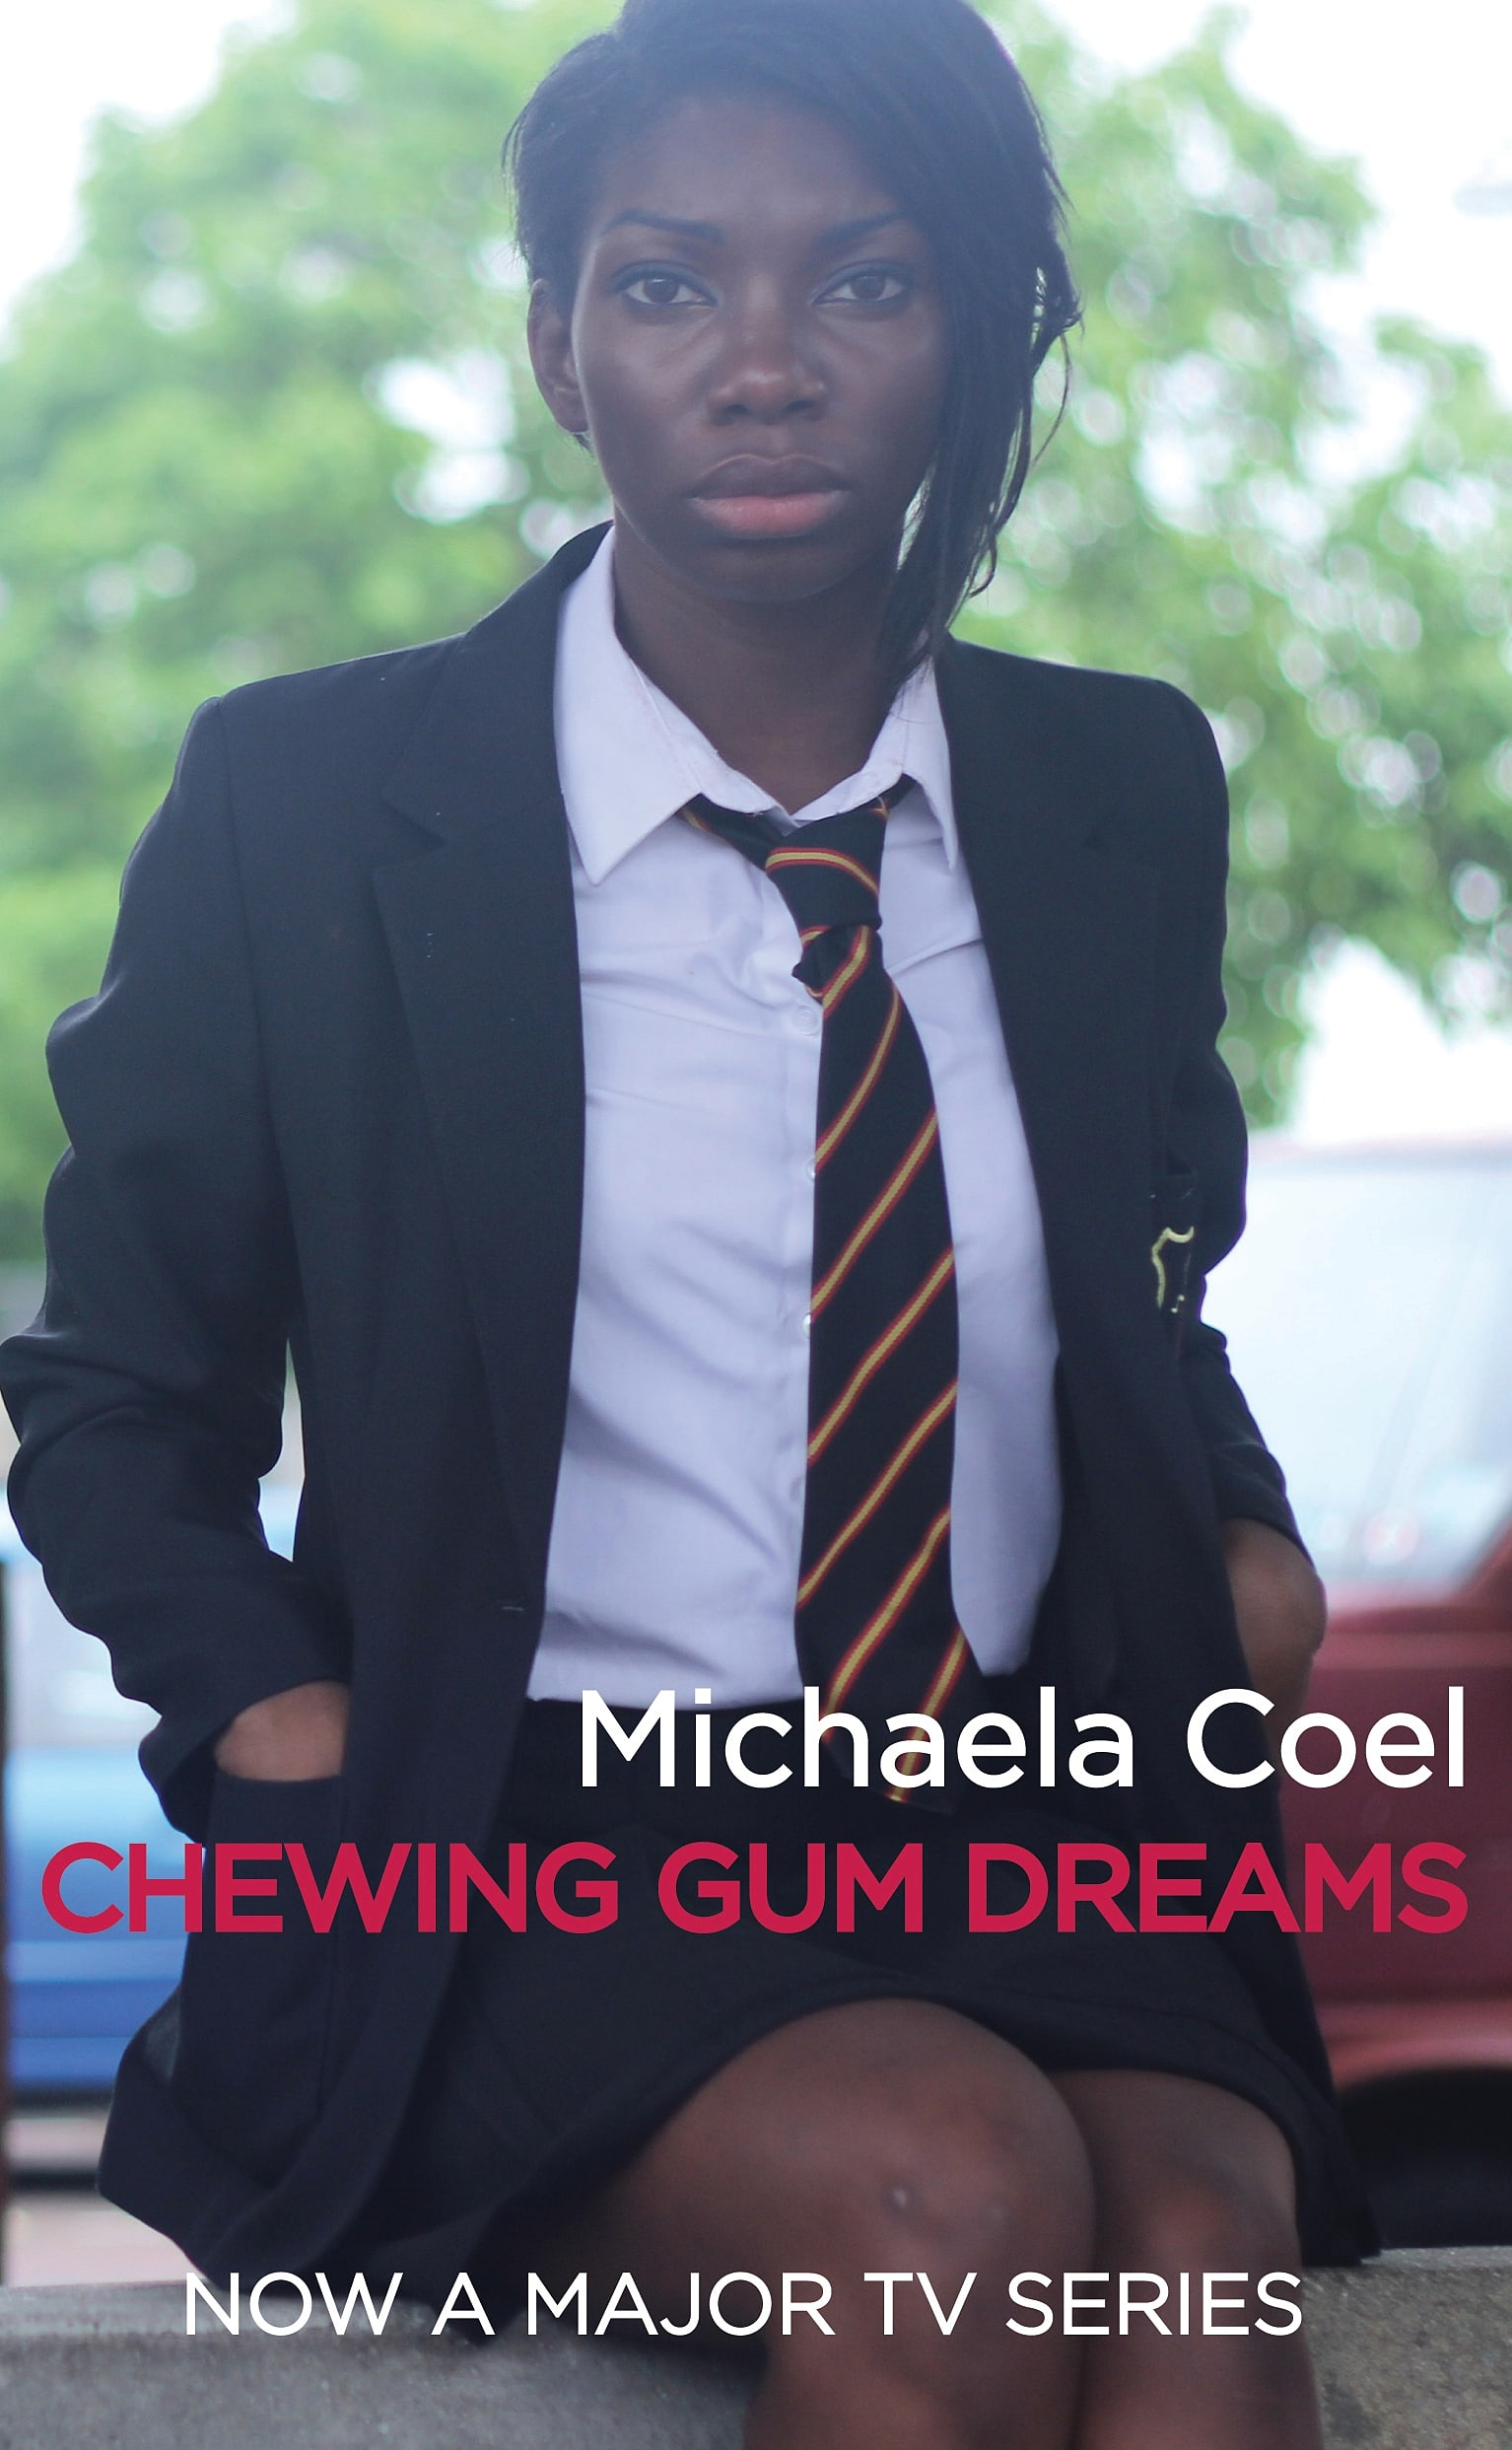 Chewing Gum Dreams cover image